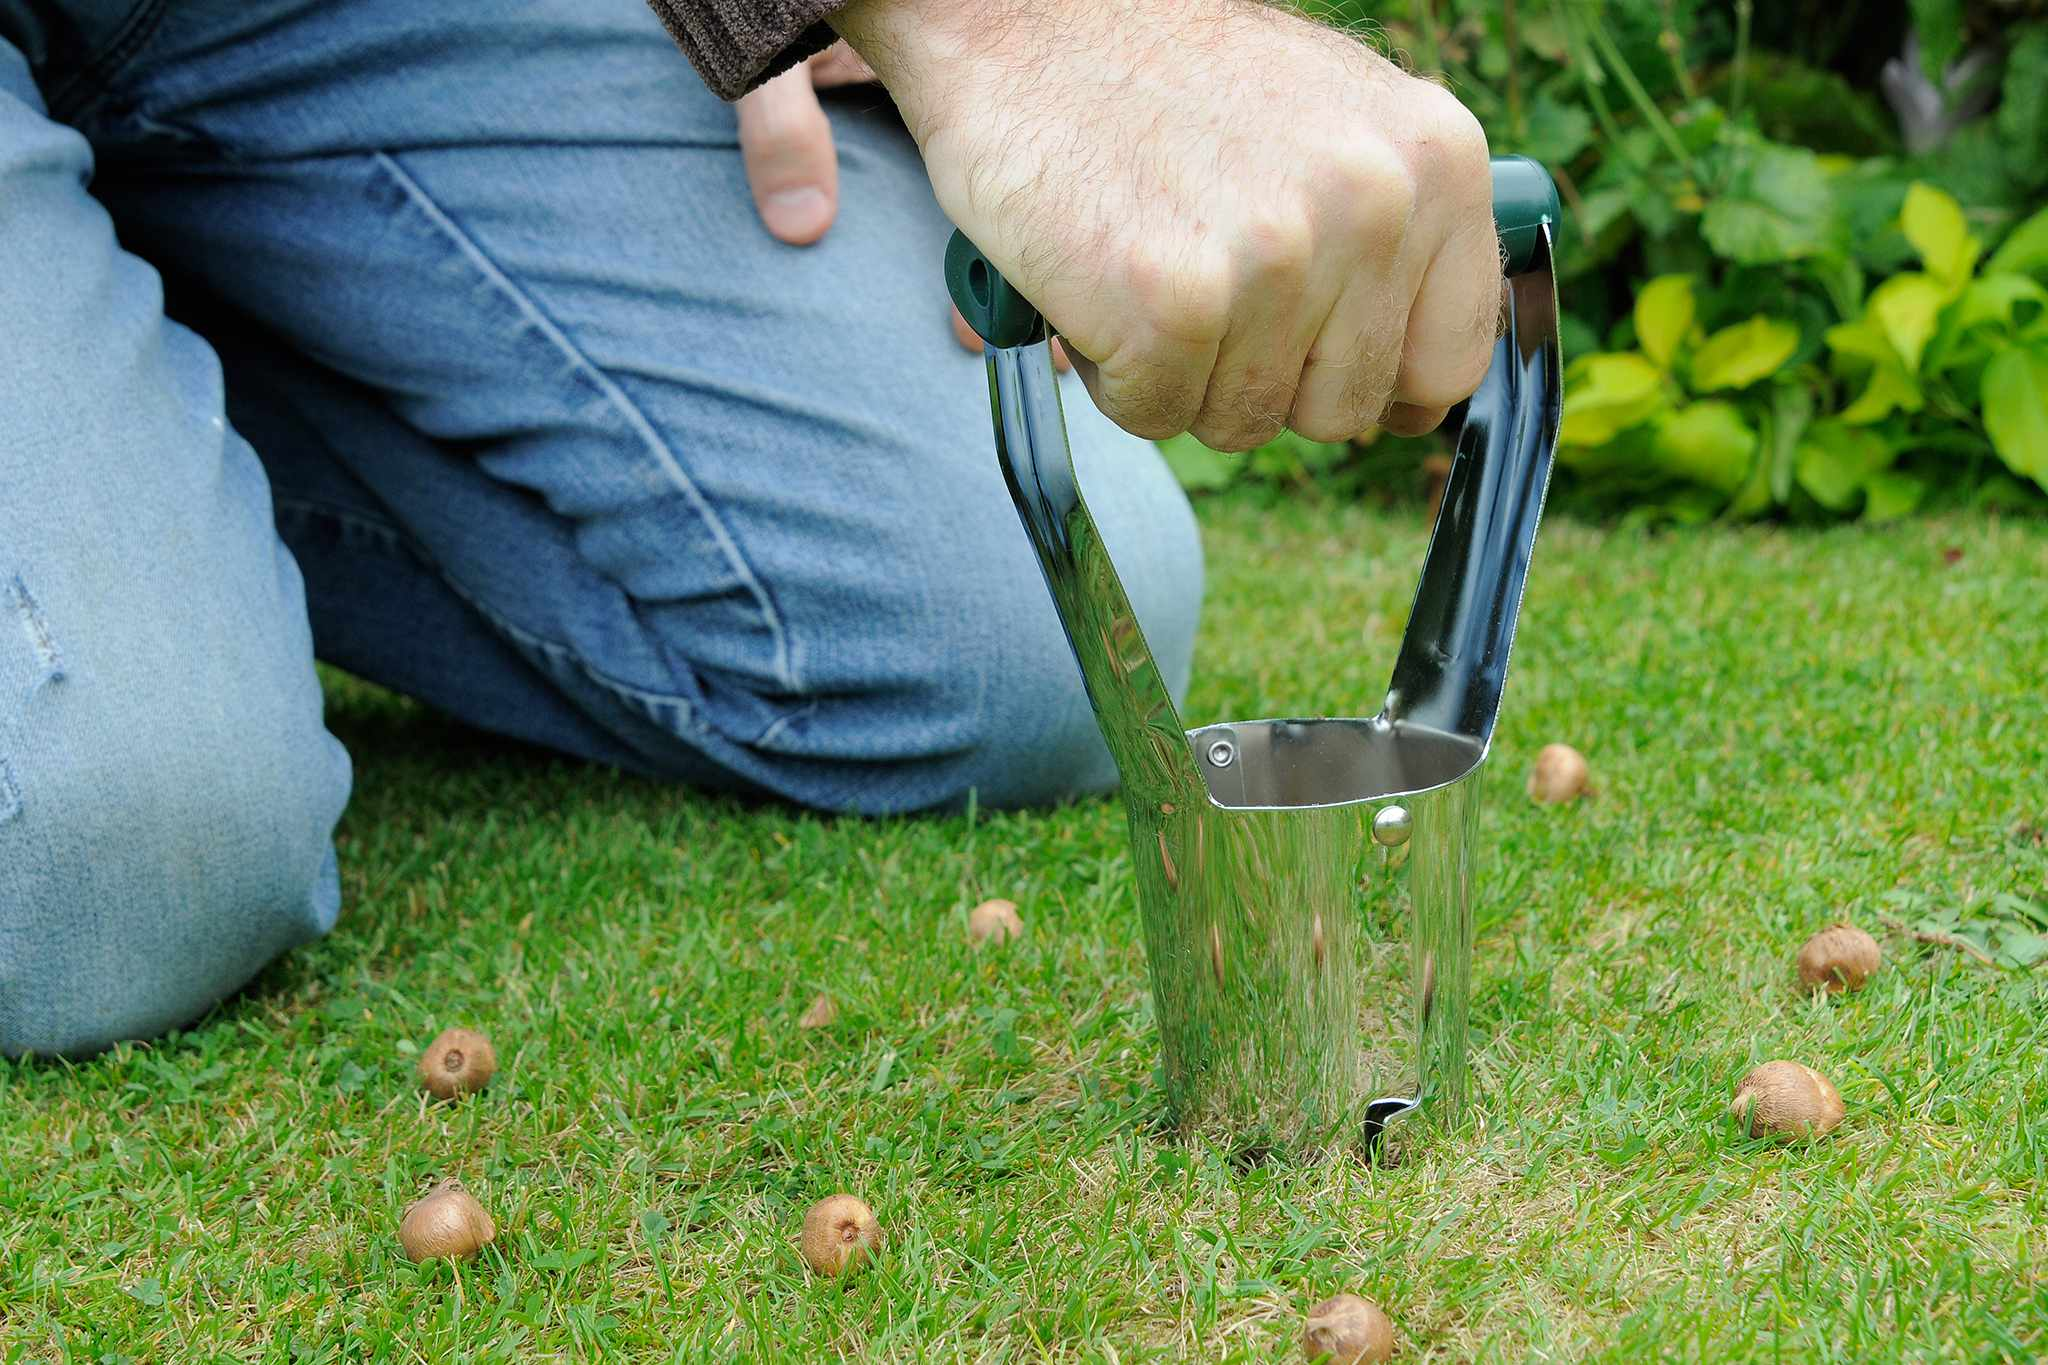 Planting bulbs in a lawn